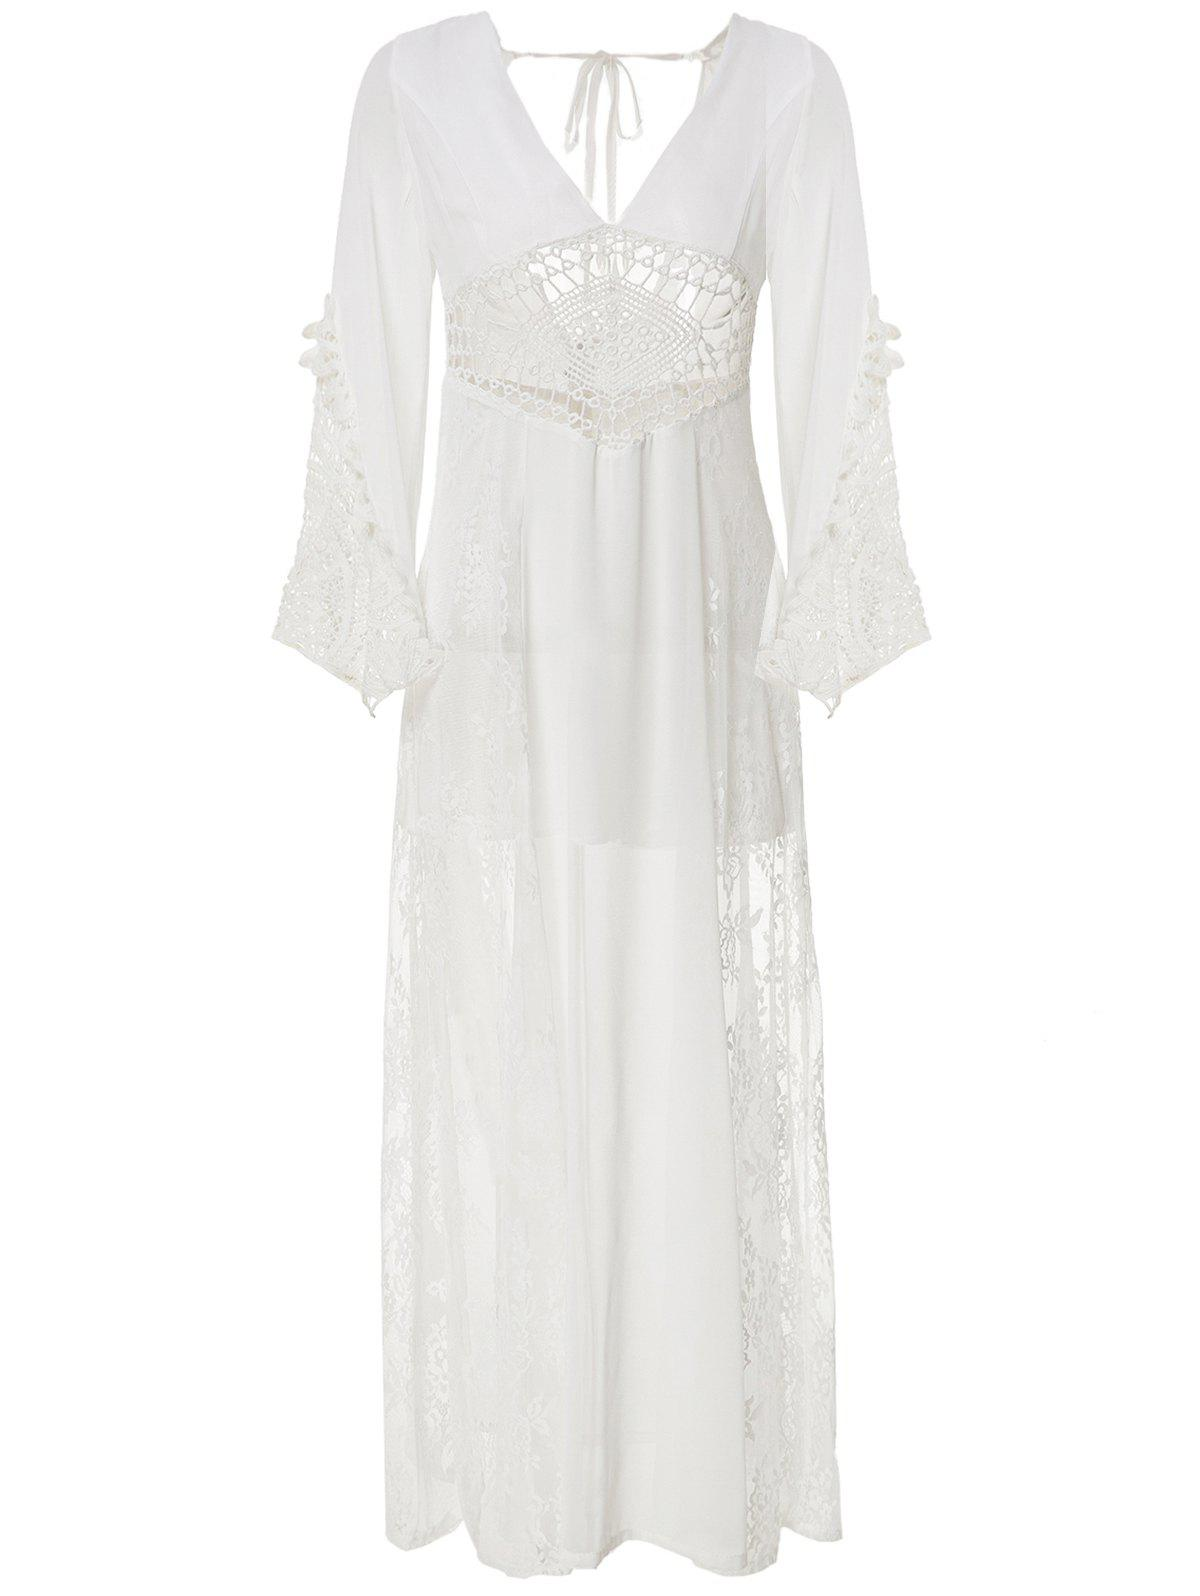 Store Alluring Plunging Neck Hollow See-Through Long Sleeve Dress For Women